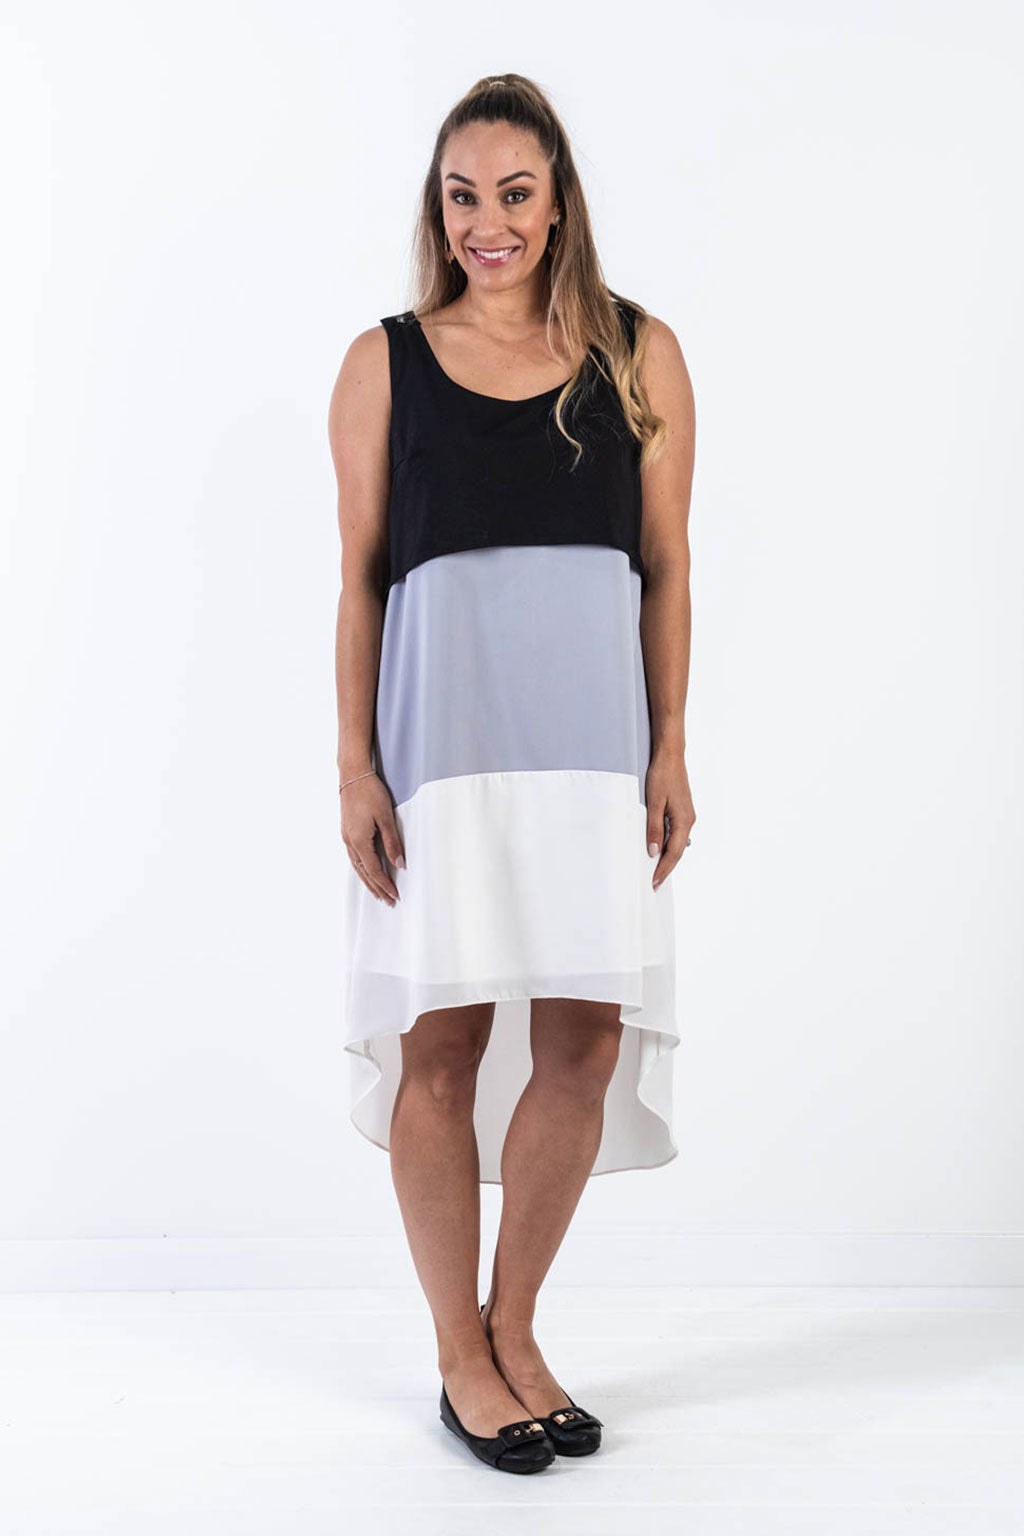 Super Sundae Dress - Grey